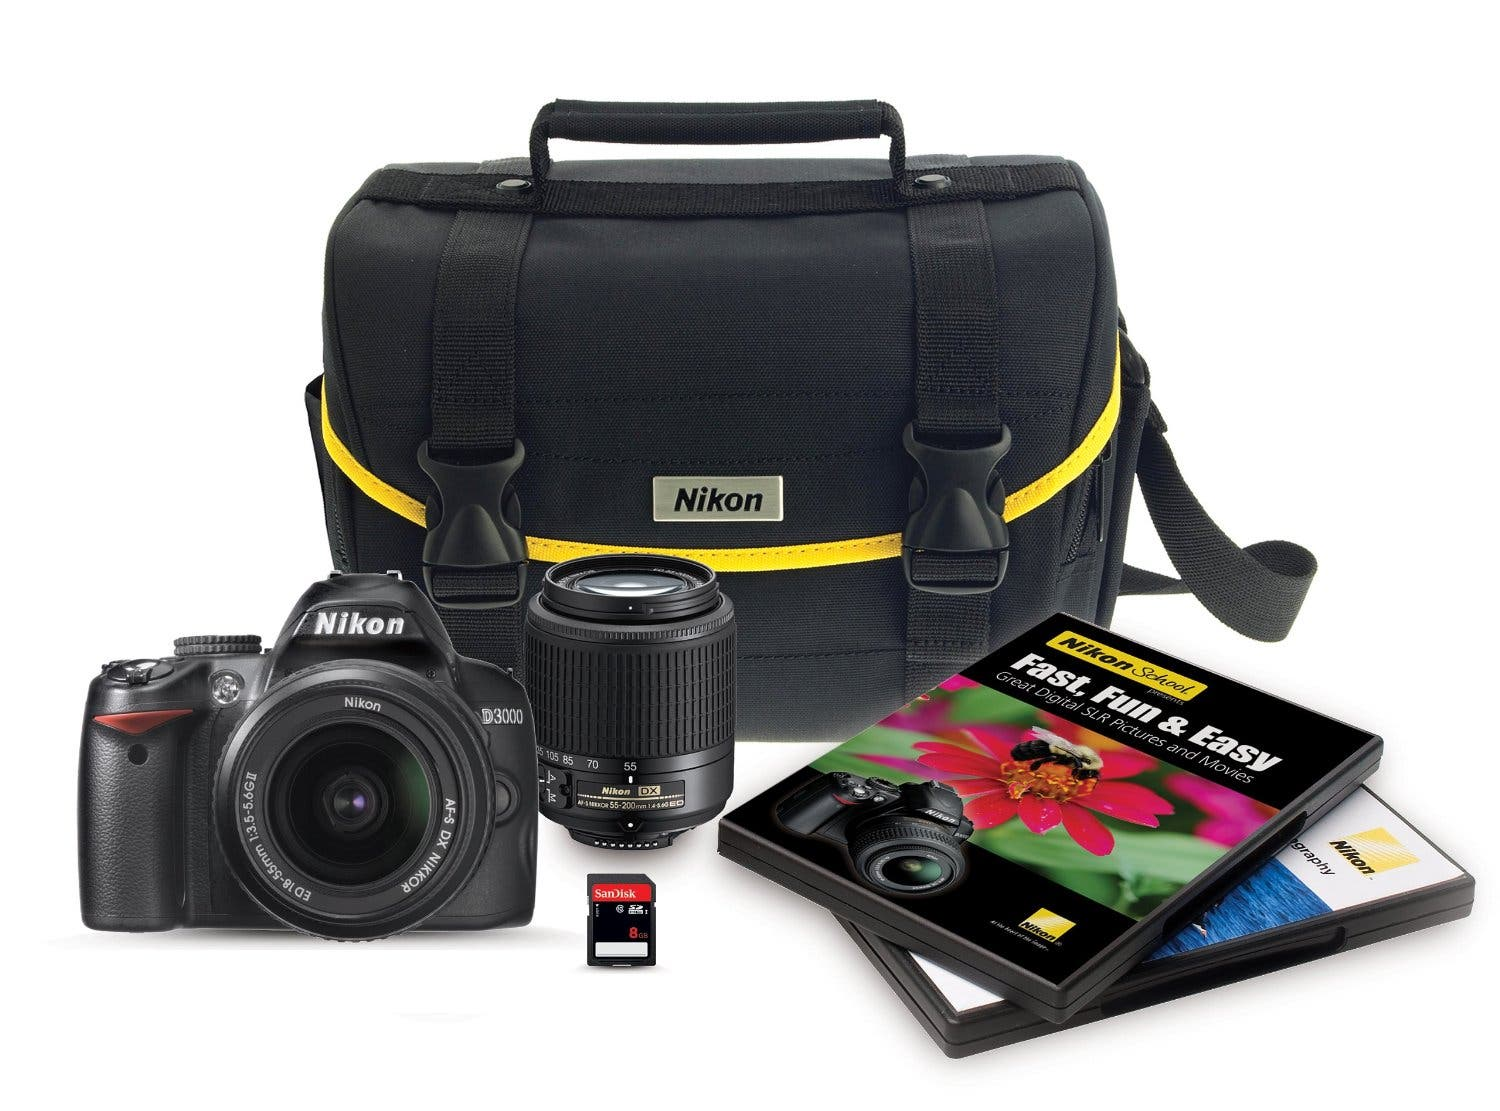 Cheap Photos: Get the Nikon D3000 and a Bunch of Crap You'll Never Use for Under $500